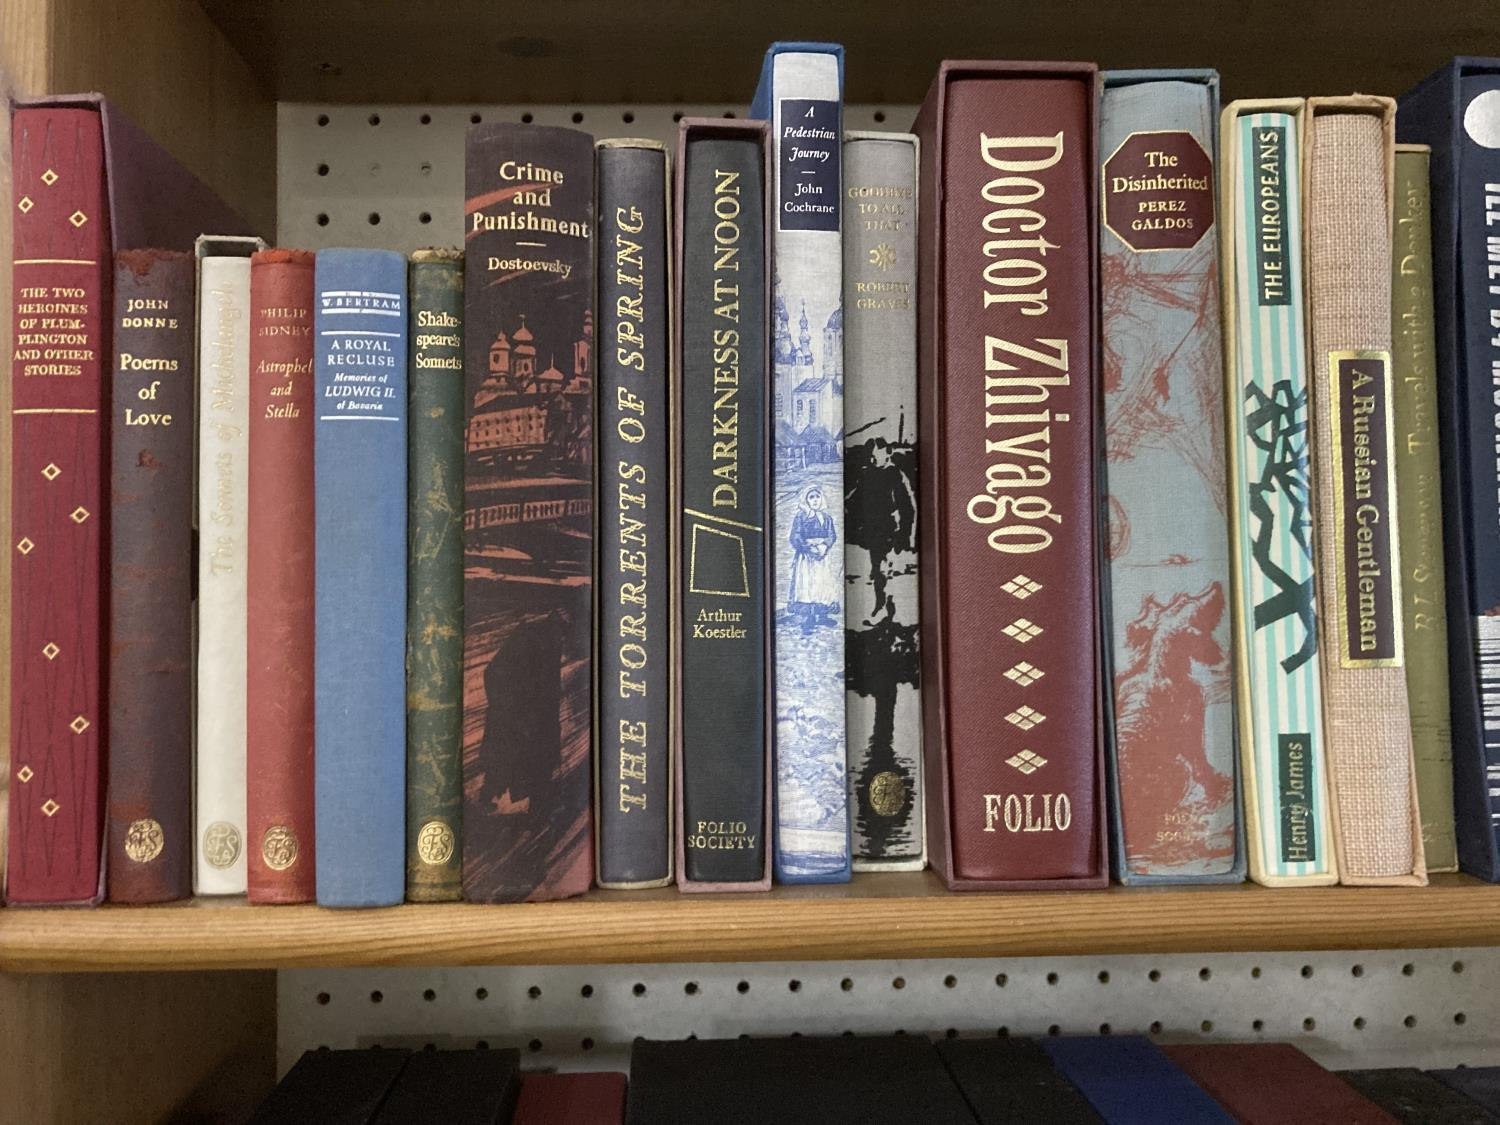 Folio Society. A group of 74 volumes, mostly literature and poetry, various bindings, most with - Image 4 of 20